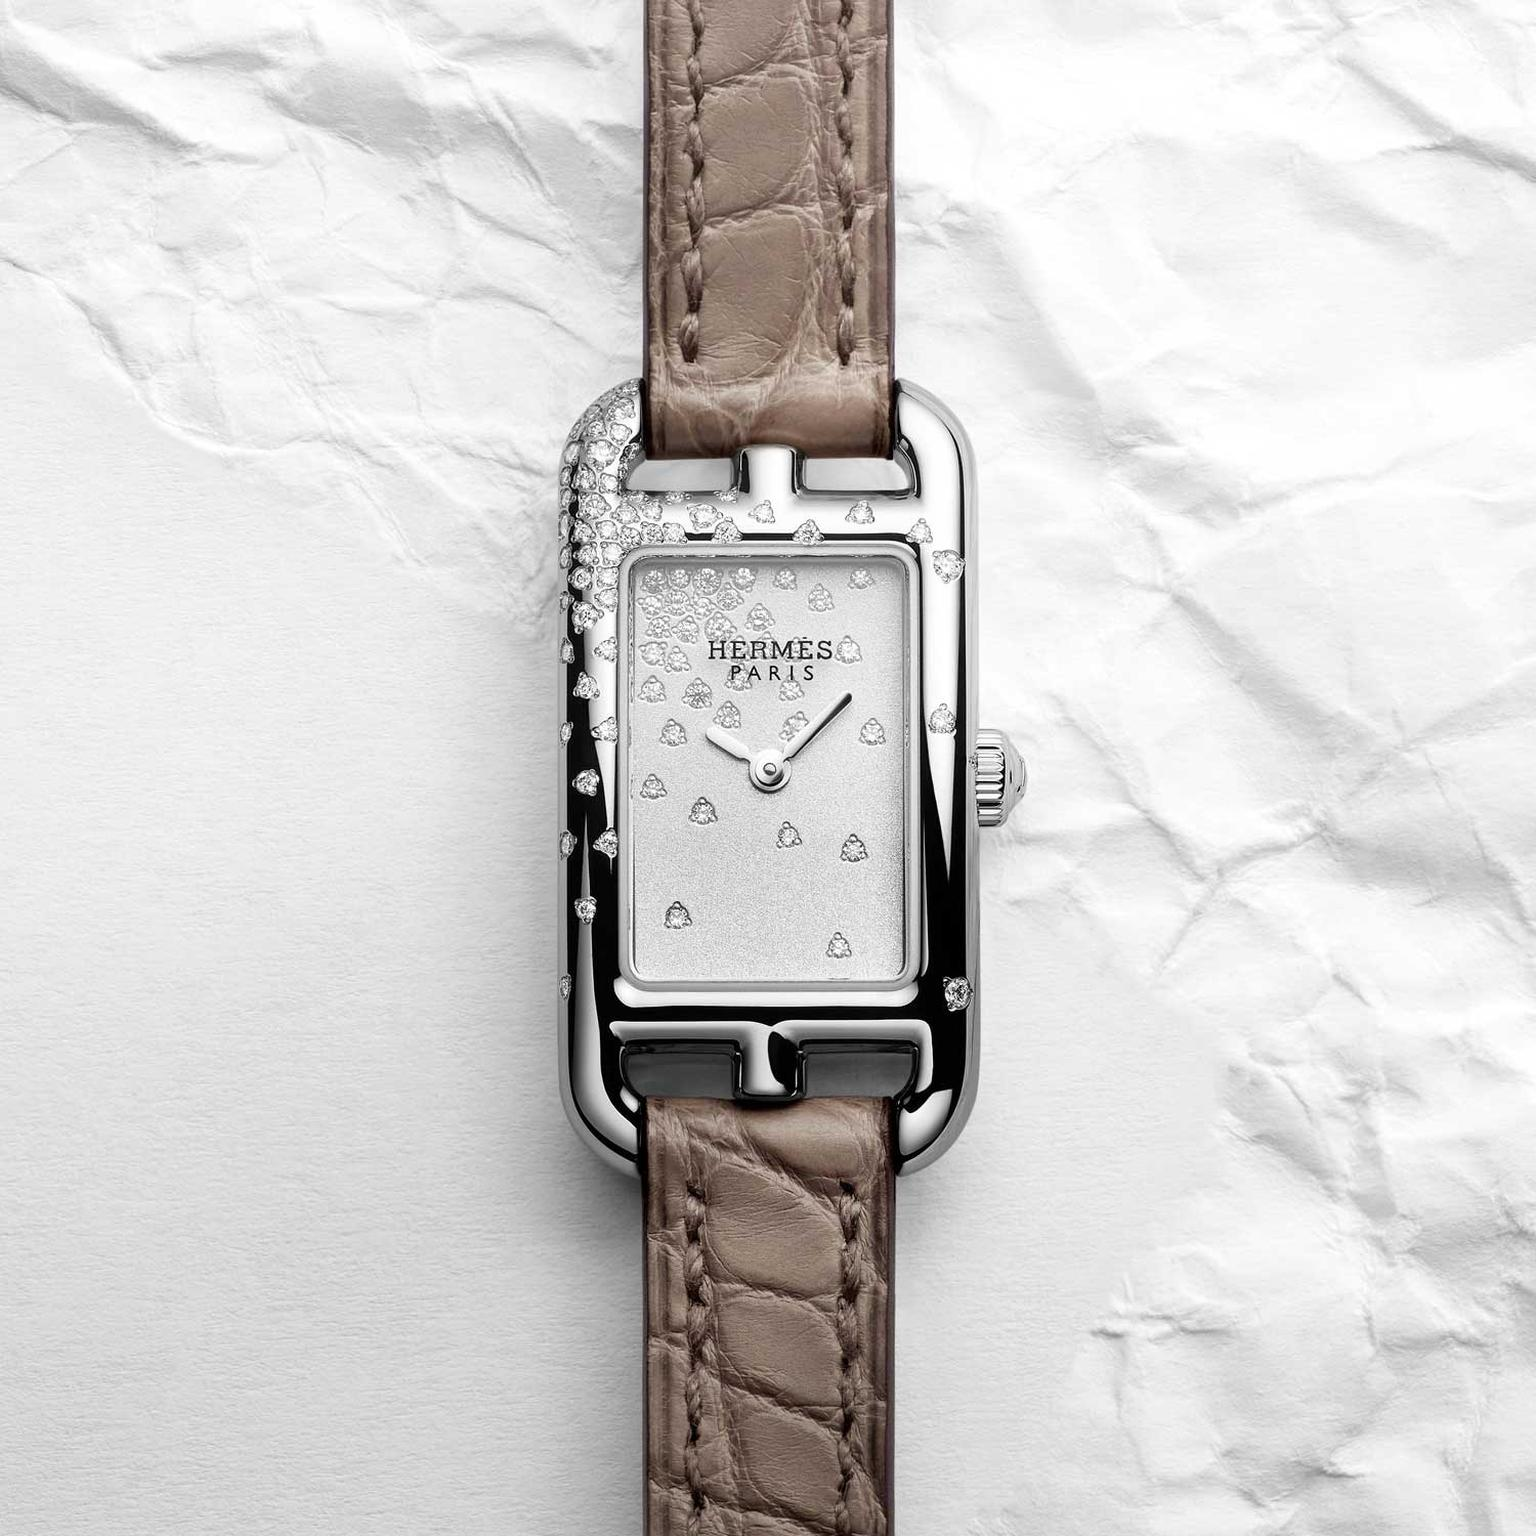 Hermes Nantucket jete de diamants watch with brown alligator strap